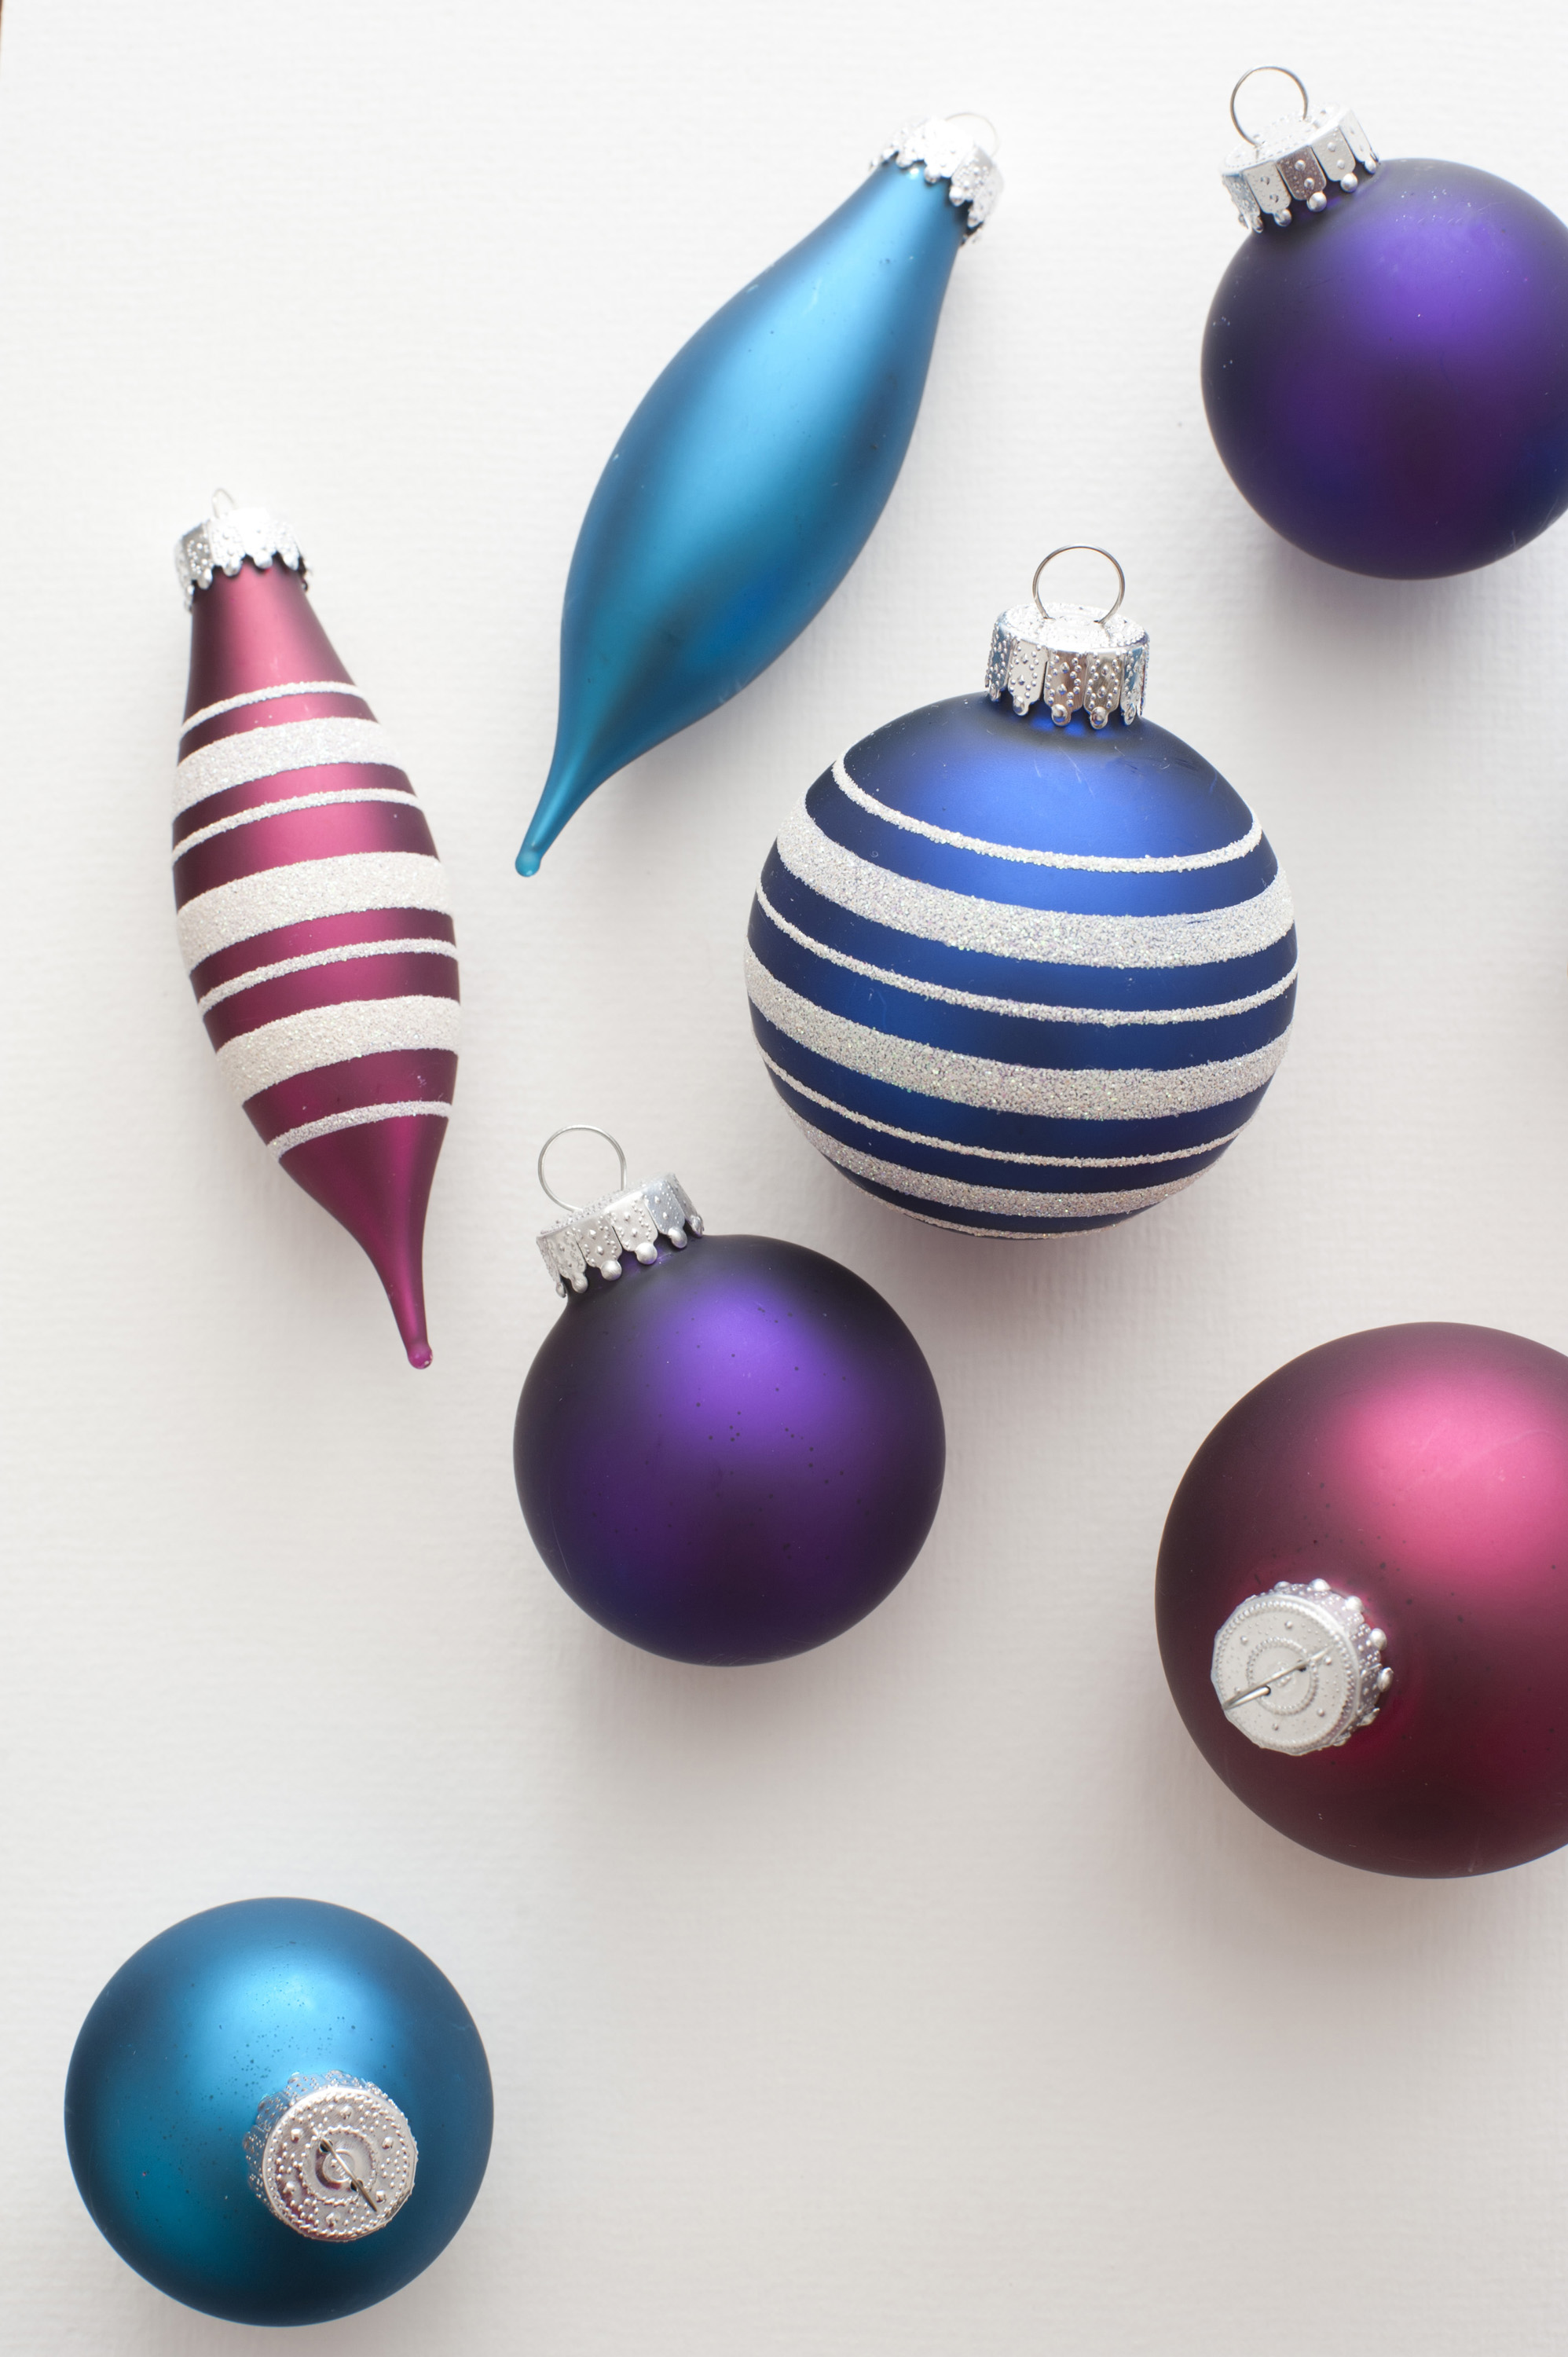 Close-up of seven colorful Christmas balls on white background. From above